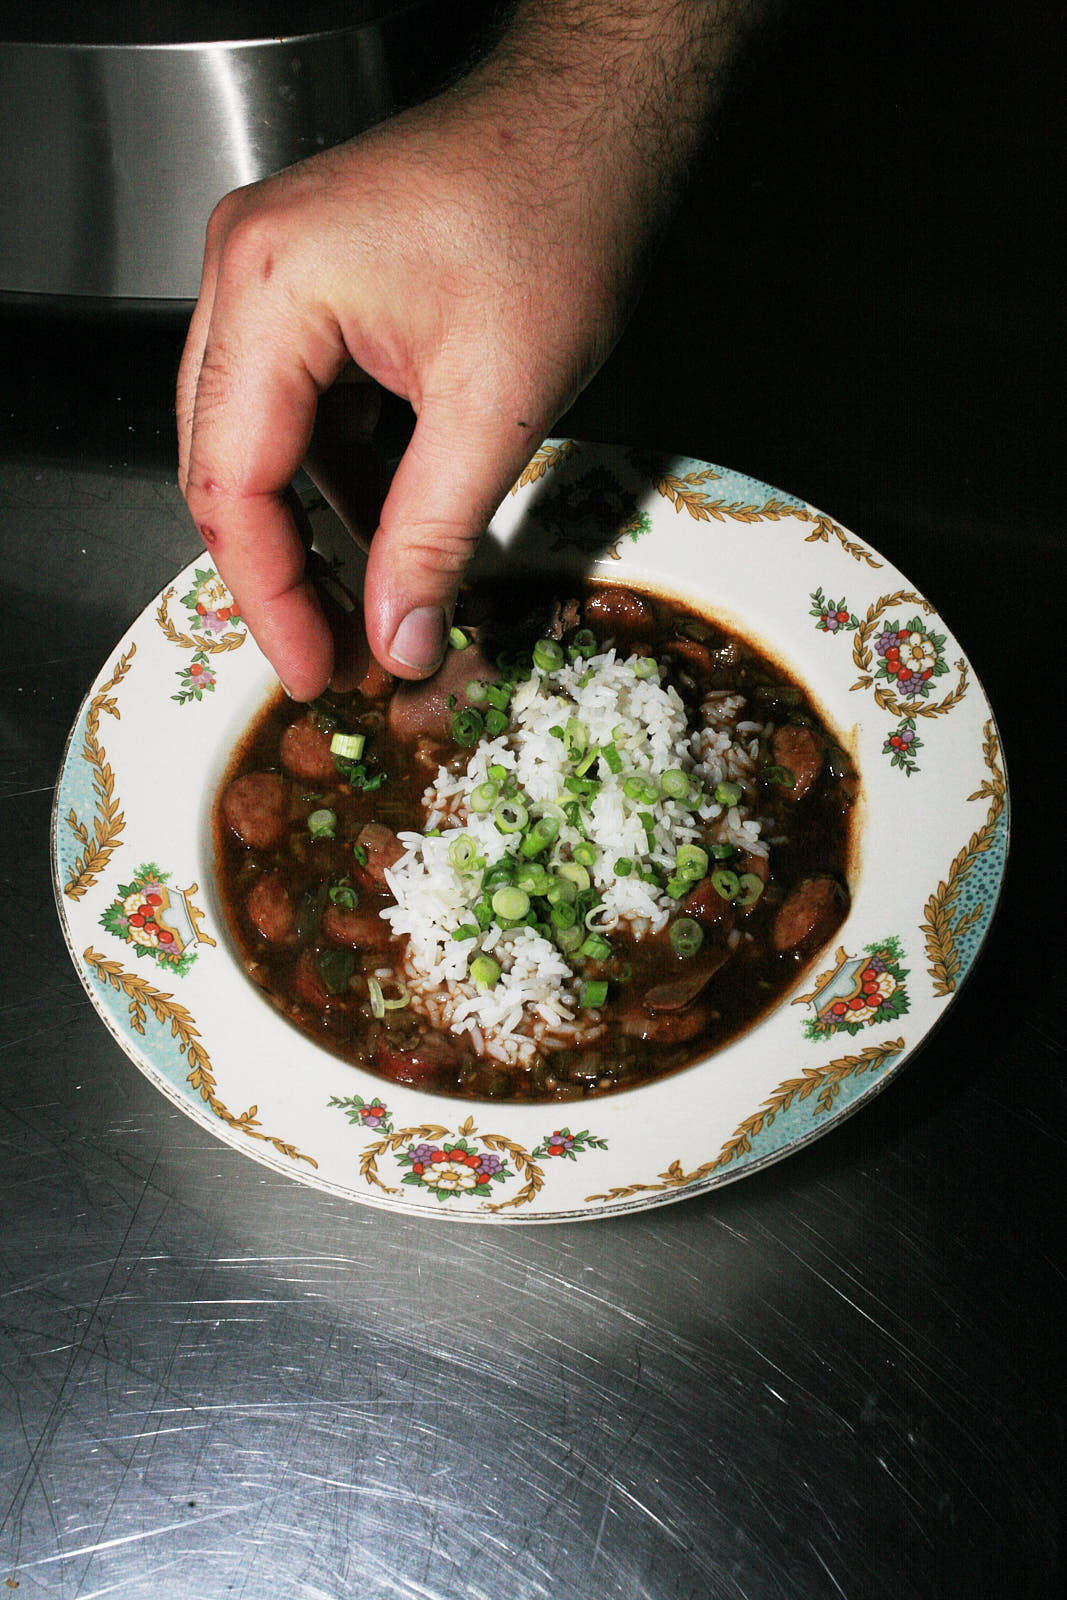 A shallow, floral-patterned china bowl of the gumbo, now with white rice and spring onions added.